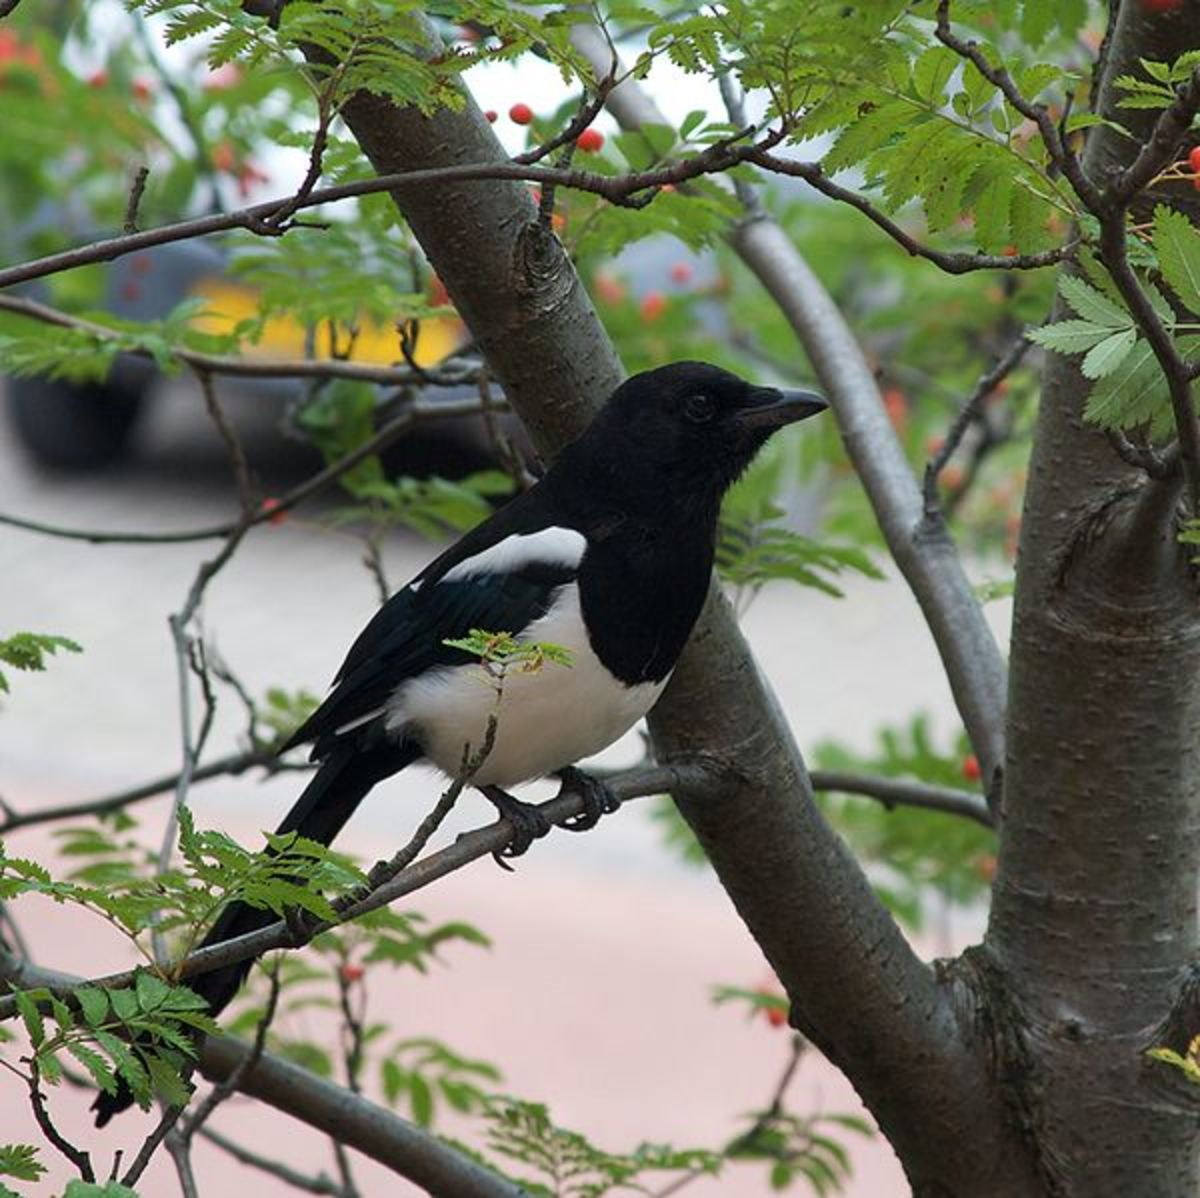 Magpies are perhaps the most visible of the many garden creatures which will take nestling birds.